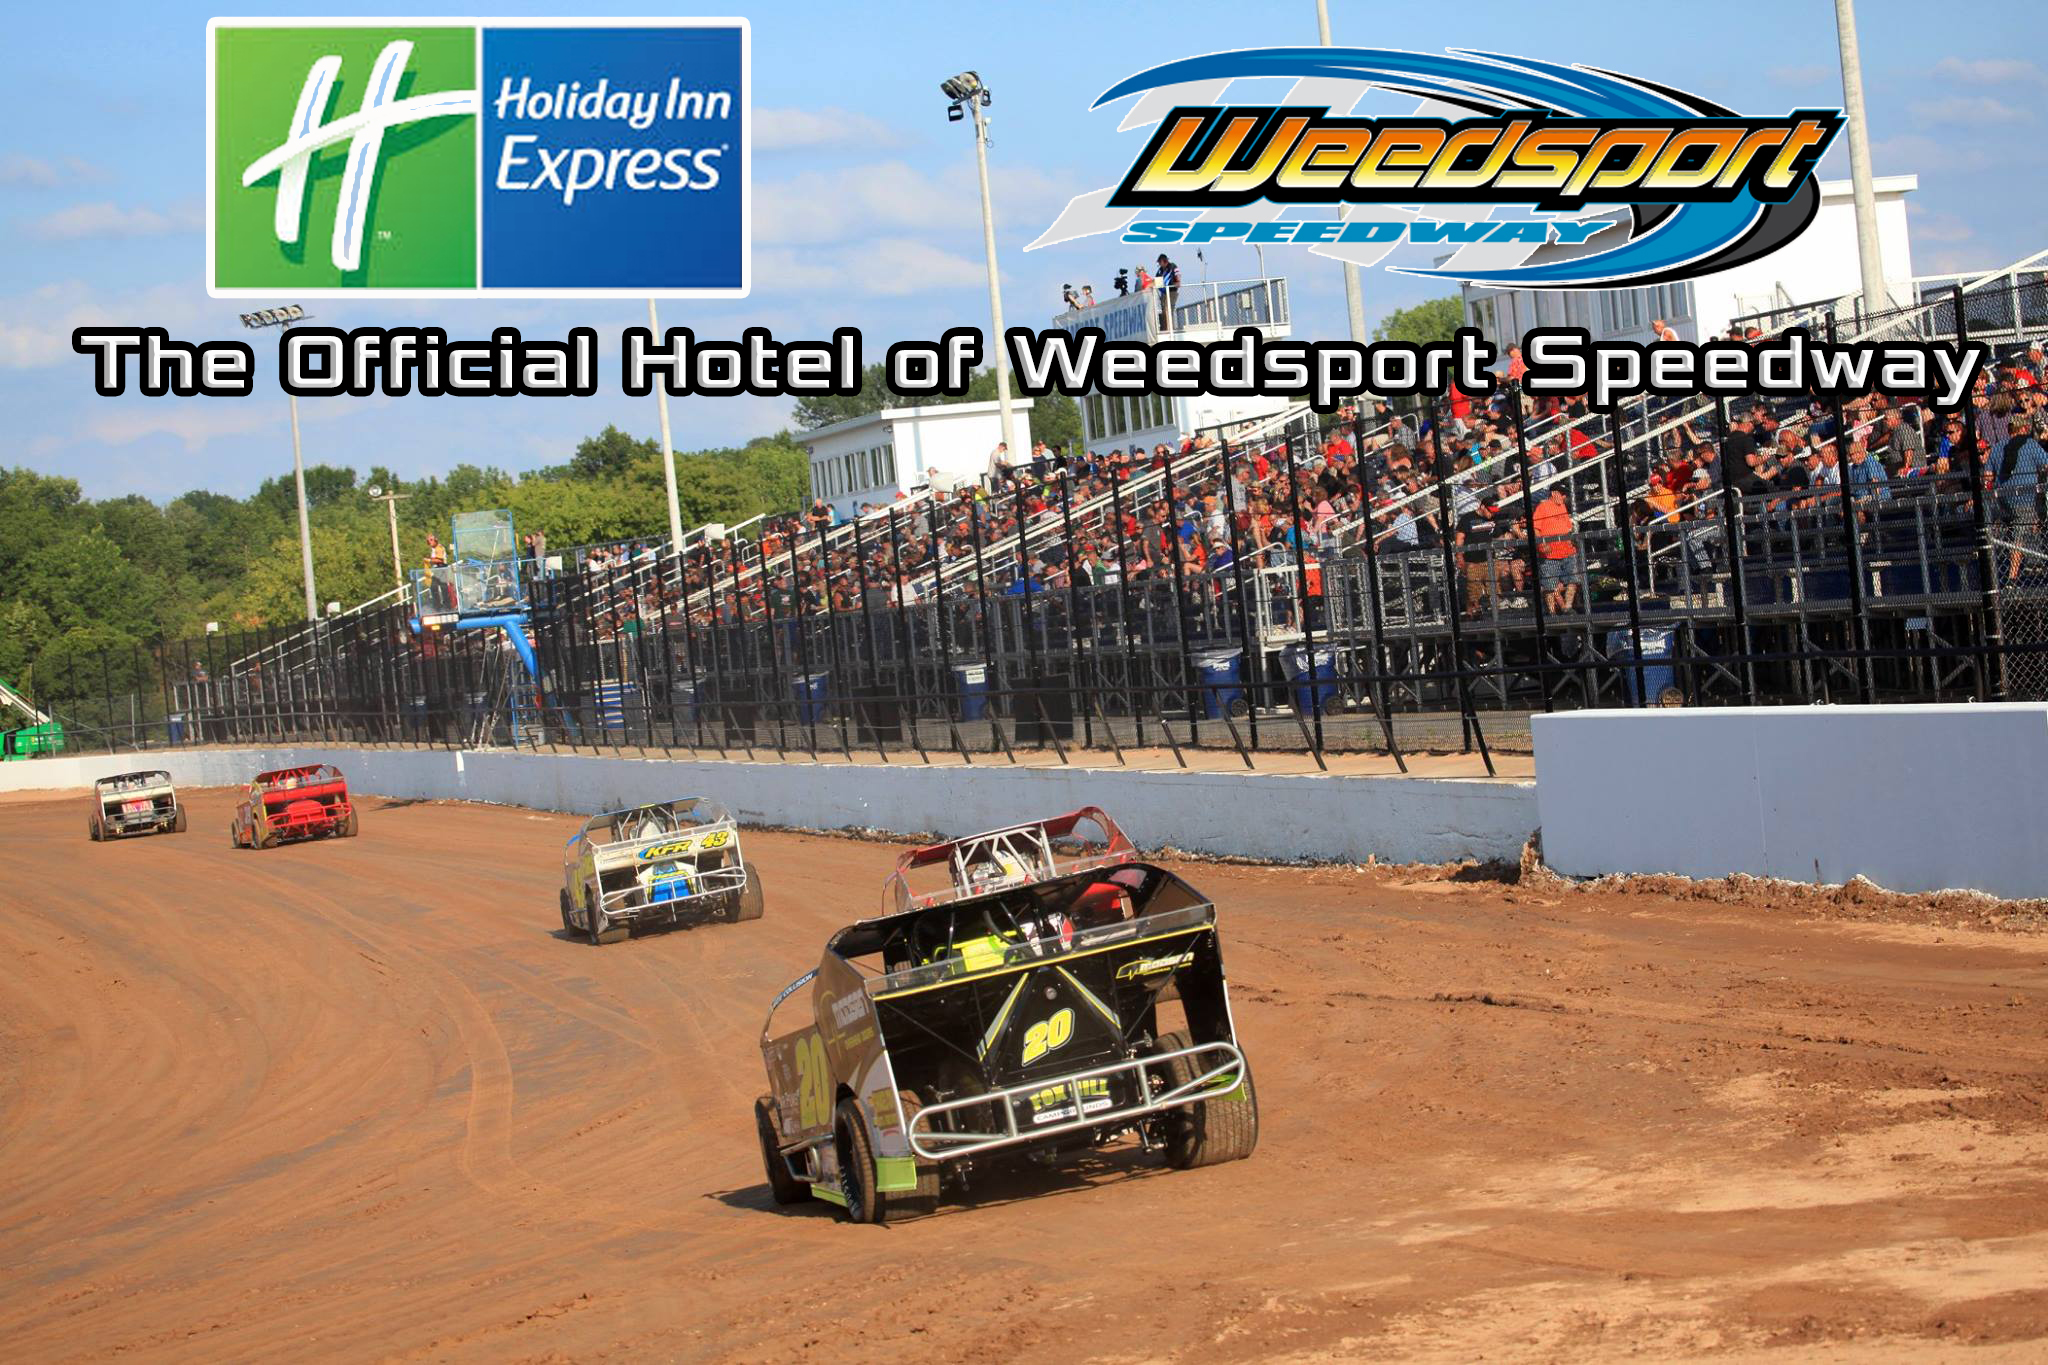 Holiday Inn Express Fairgrounds Named Official Hotel of